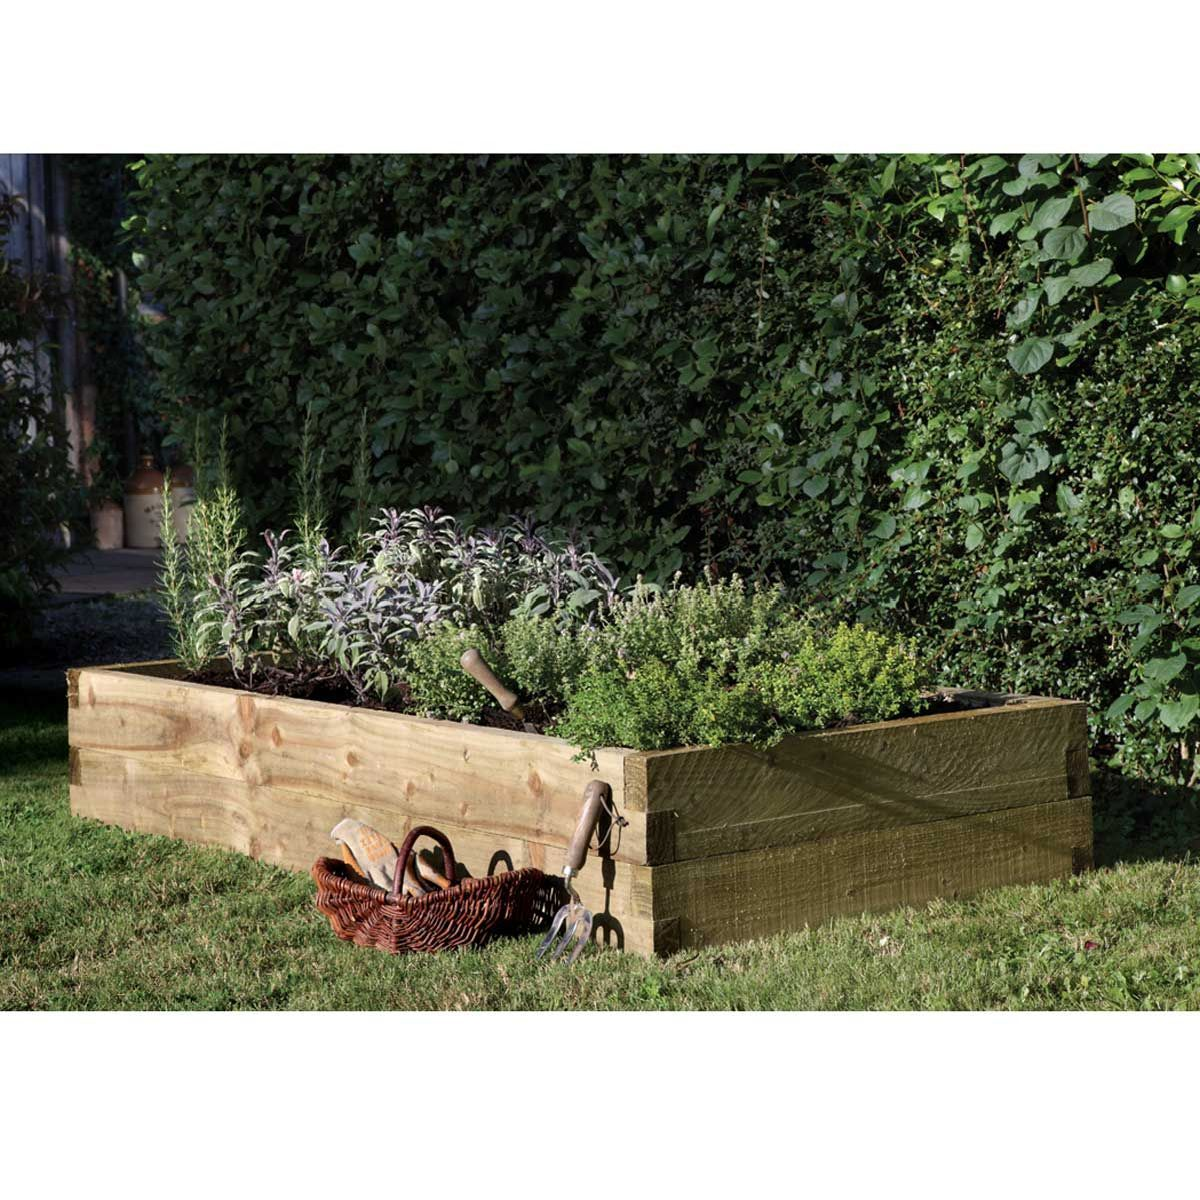 Forest Garden Caledonian Raised Bed 180 x 90cm | Notcutts | Notcutts ...